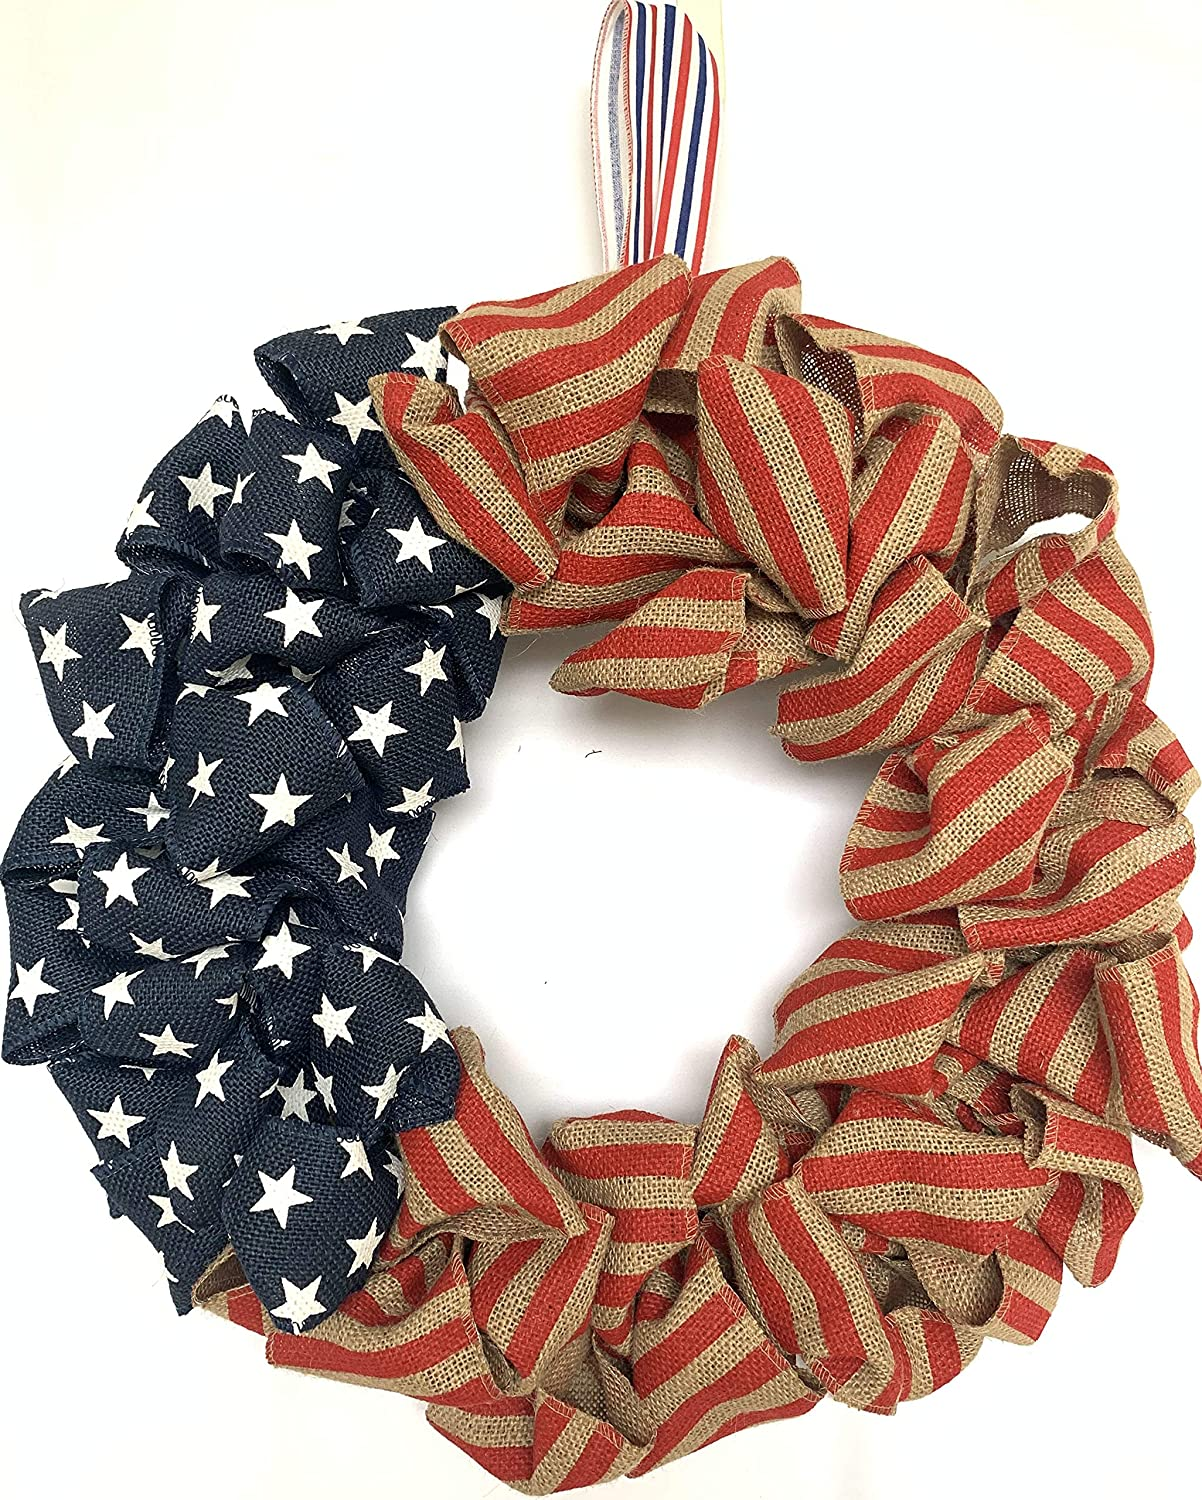 Huashen 4th July Independence Day Wreath, America Patriotic Flag Burlap Farmhouse Wreath on Grapevine for Front Door Wall Window (Burlap)